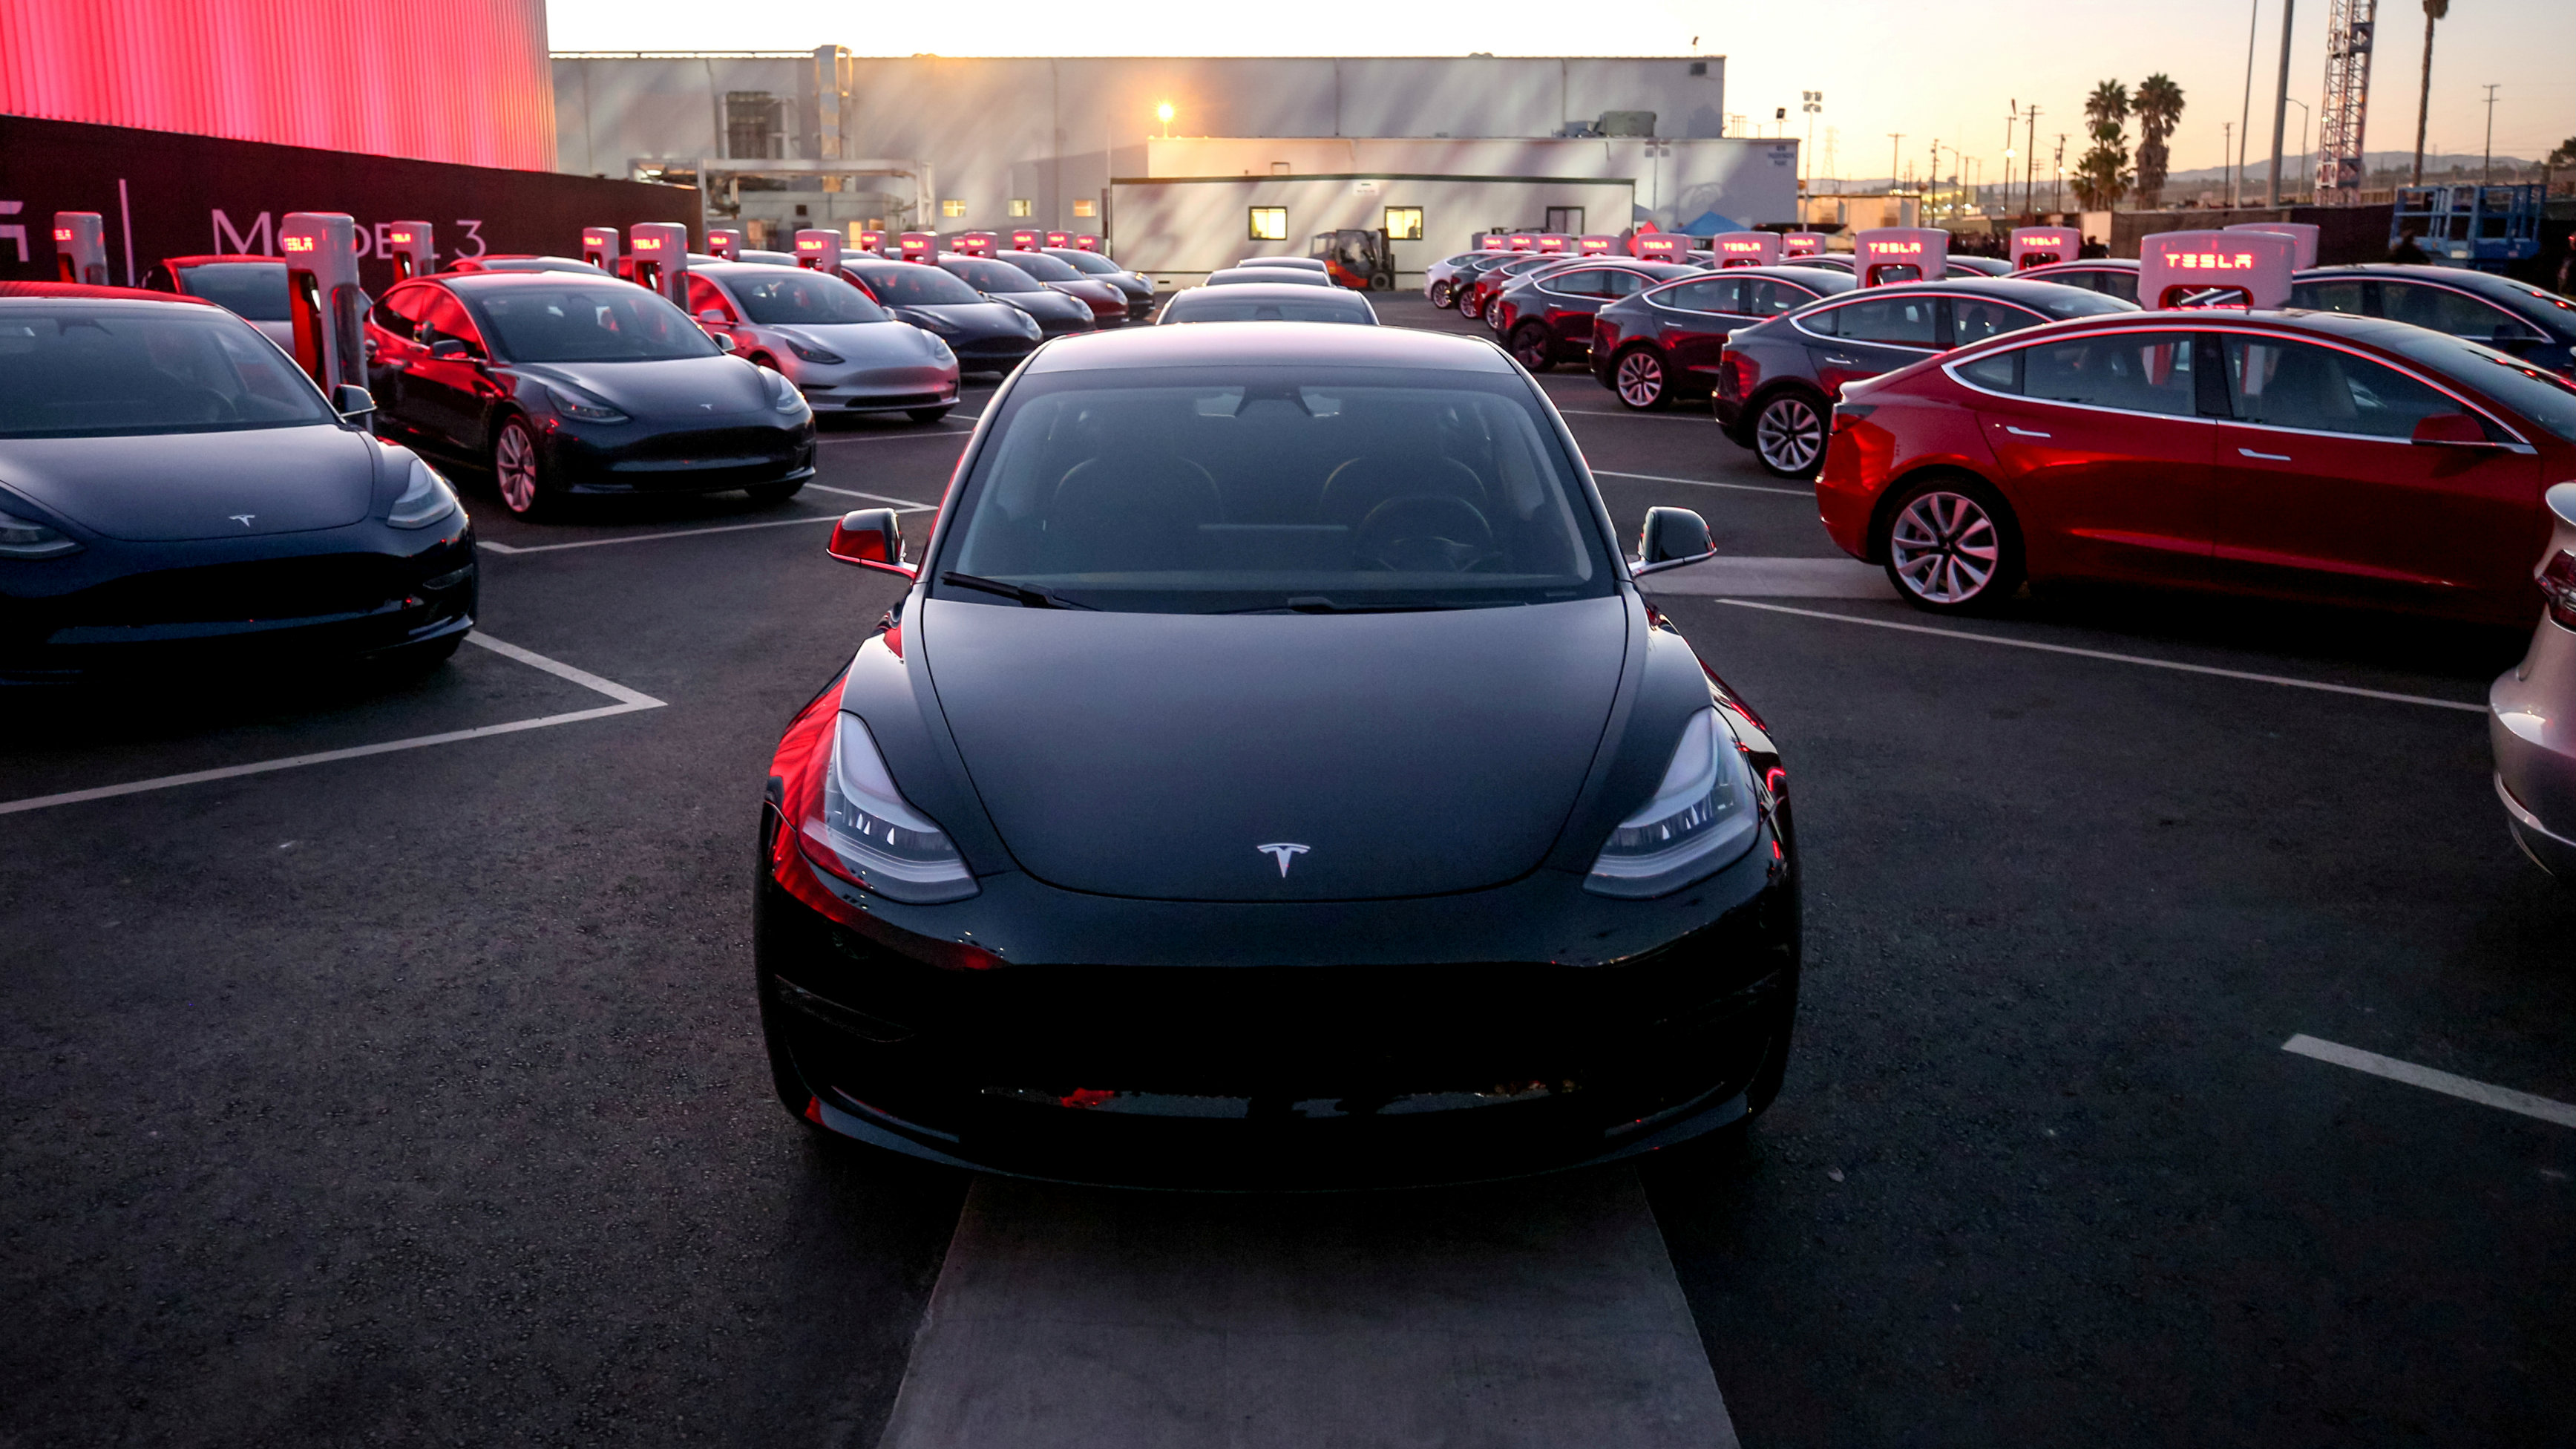 """Norway is already abandoning its plan for a """"Tesla tax"""" on electric cars"""